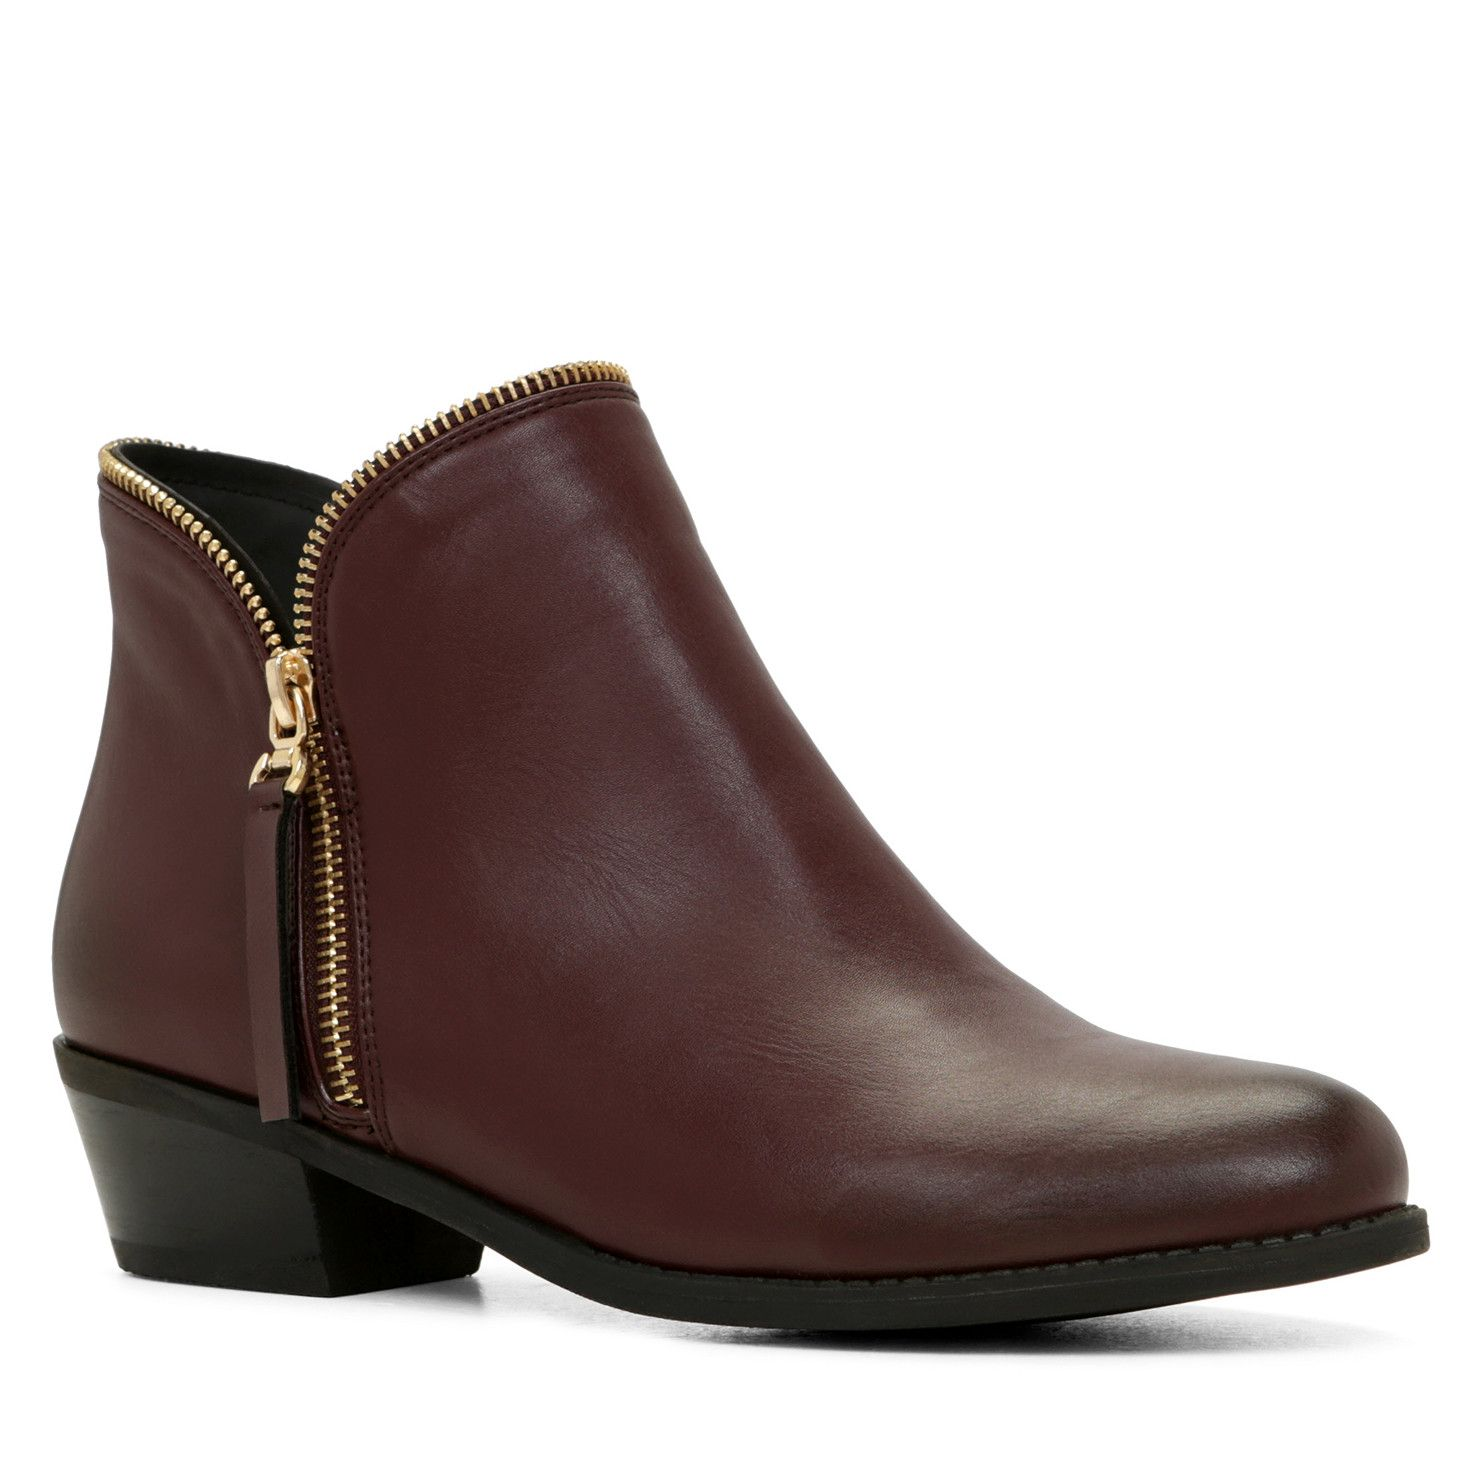 Boots, Womens boots ankle, Boots